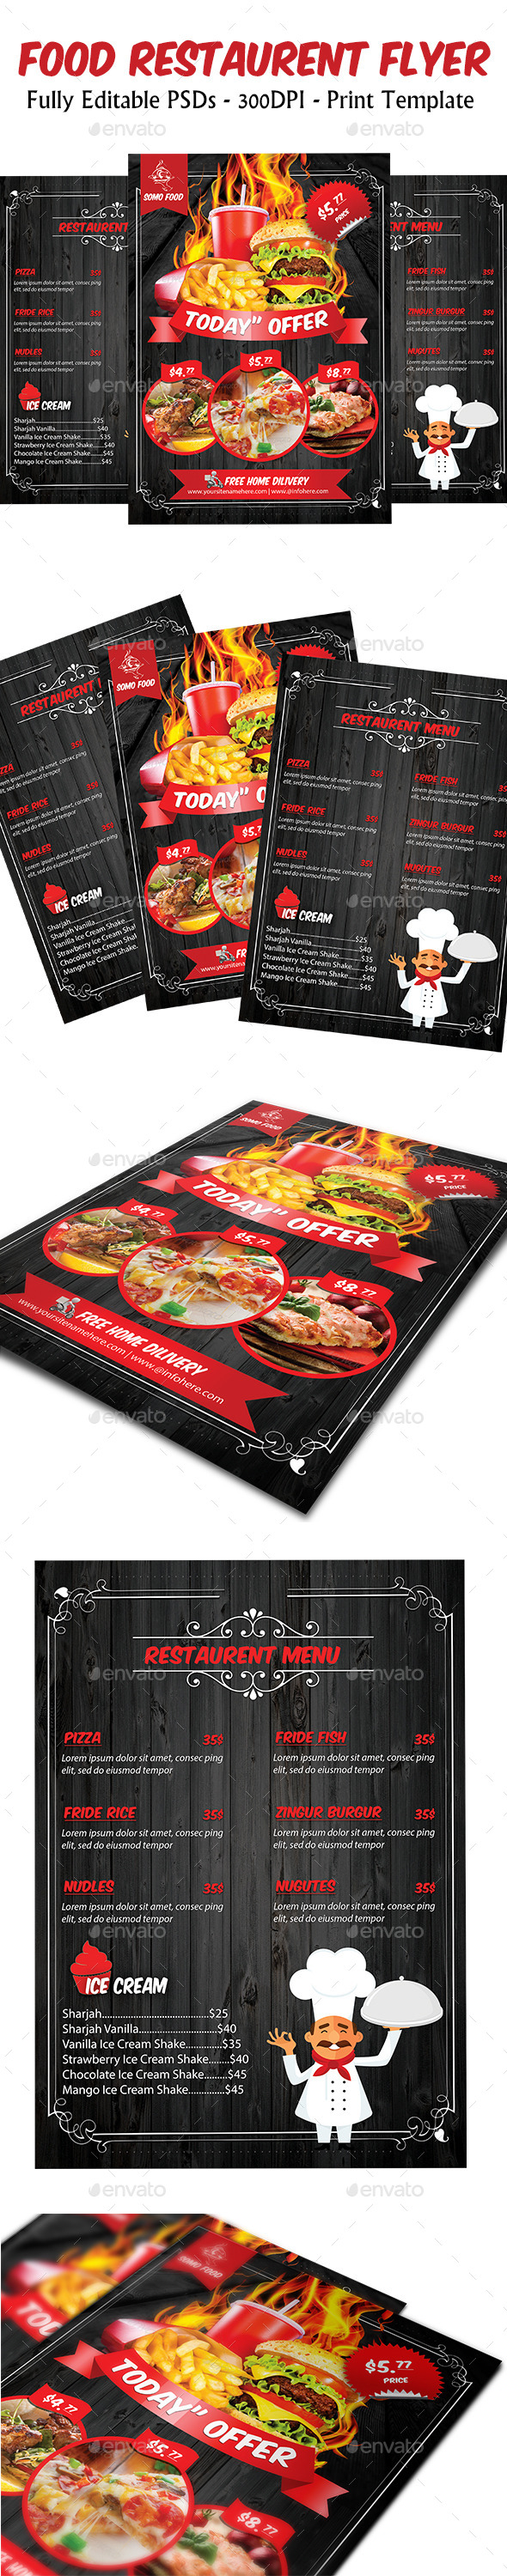 Food Restaurant Flyer & menu template - Flyers Print Templates